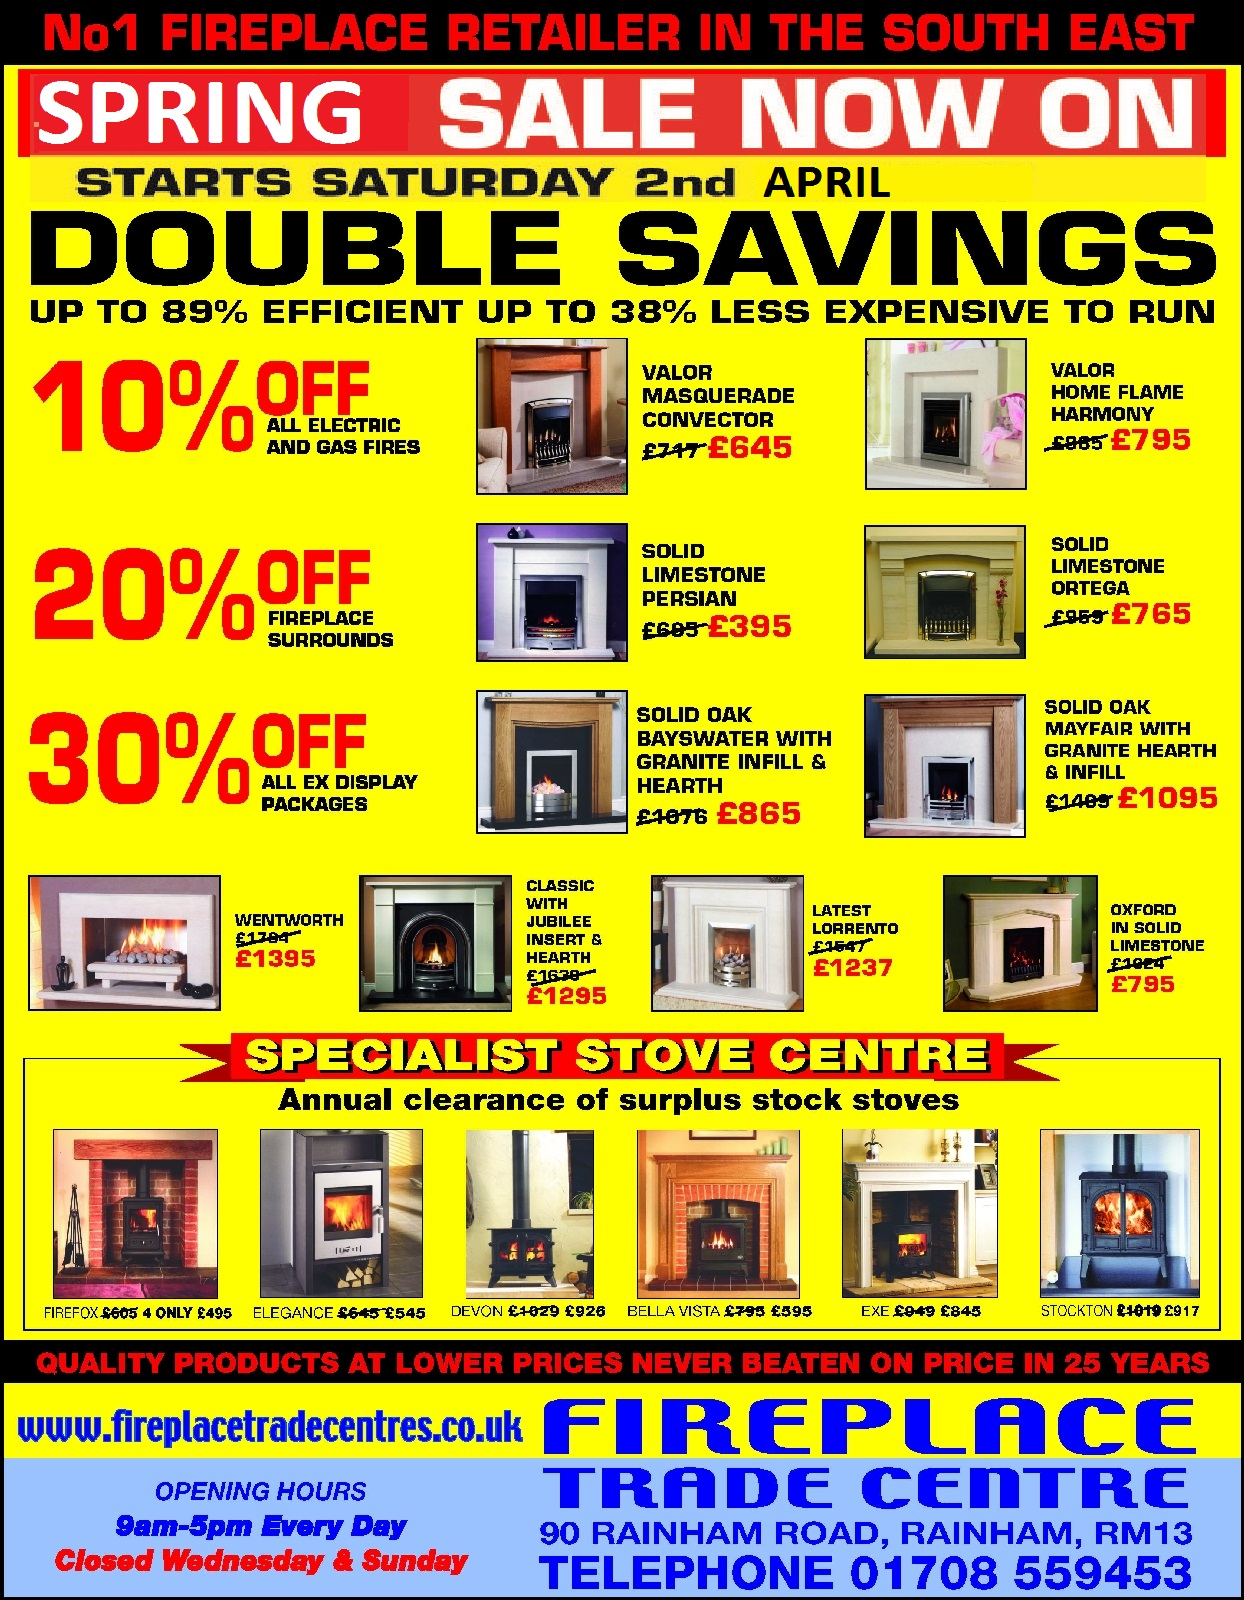 FIREPLACE-TRADE-CENTRE-RAINHAM-WK53-AMENDED